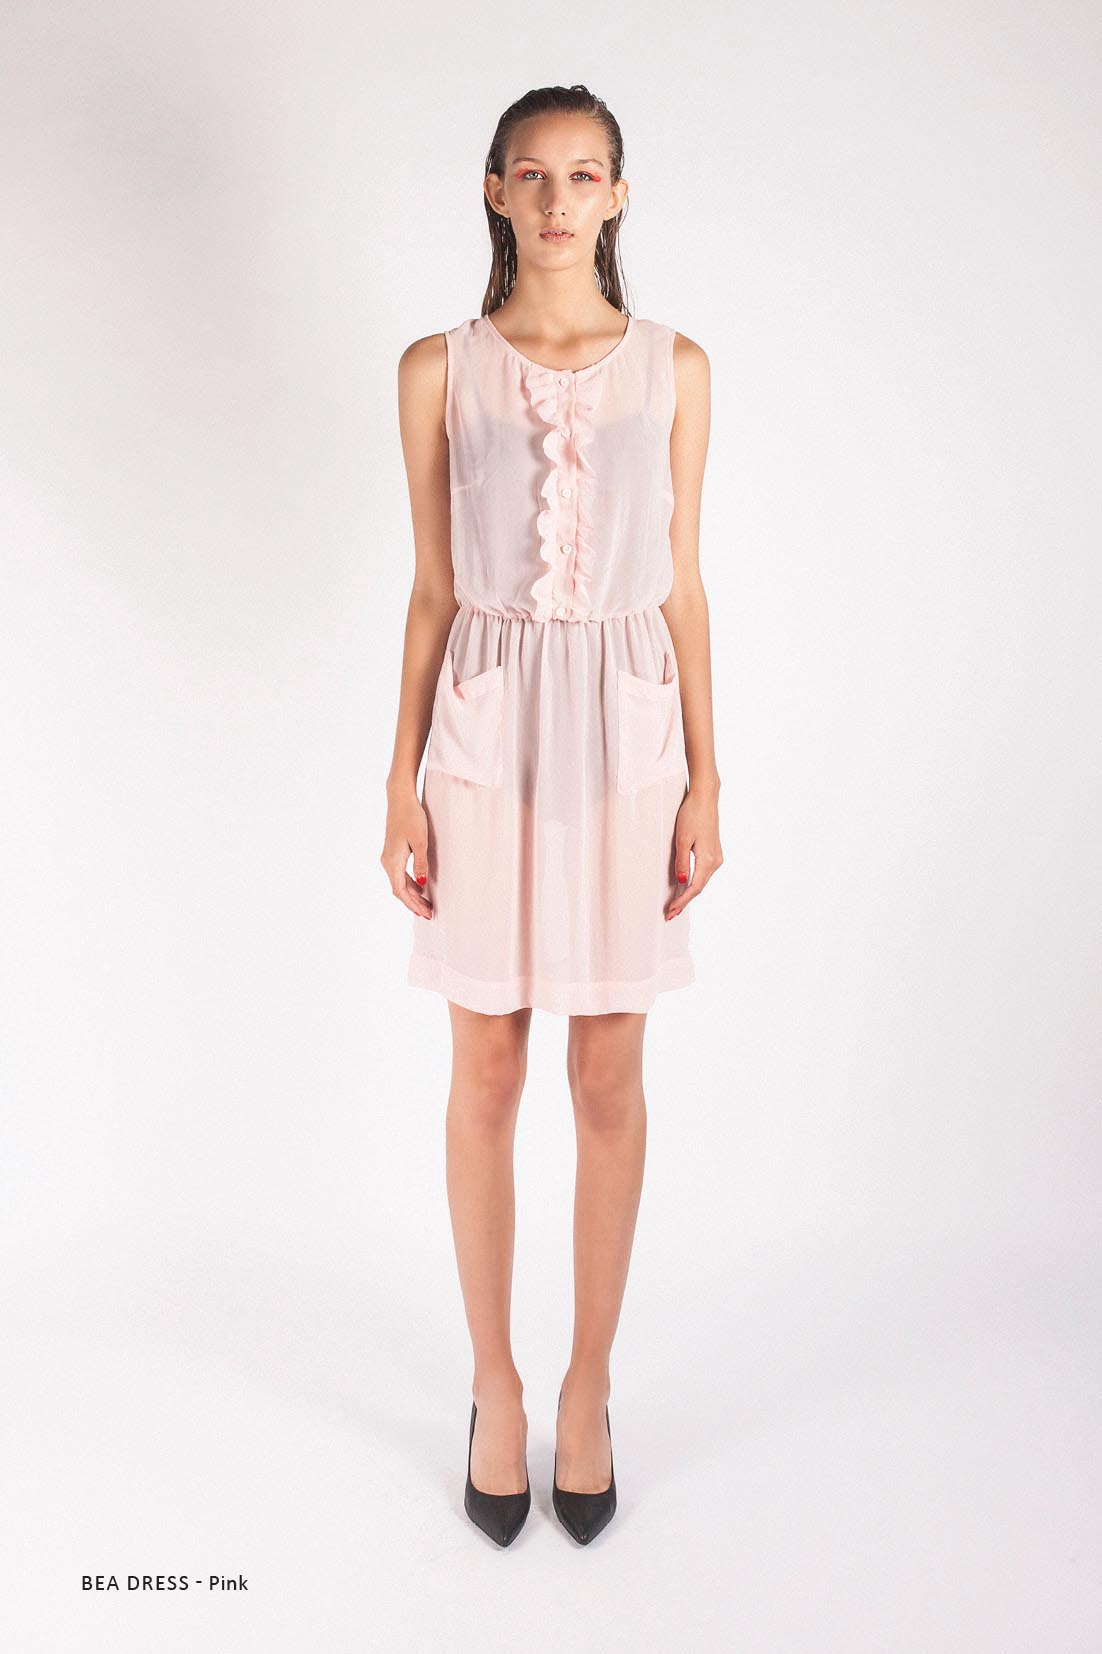 LAST SIZE / Bea Dress Pink - Was $290 Now $70